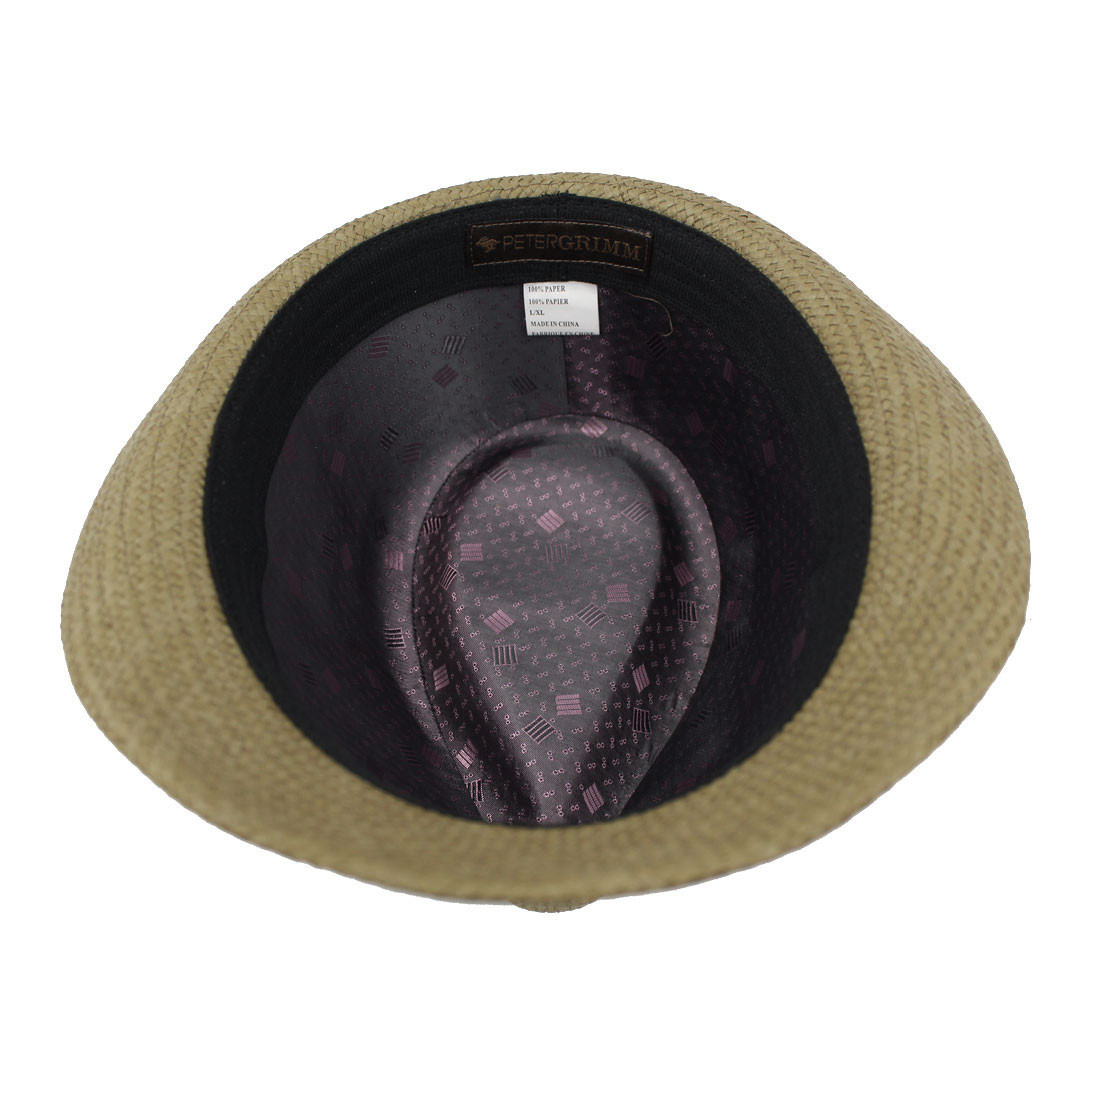 Peter Grimm Stoli Fedora brown hat with purple satin band inside view.